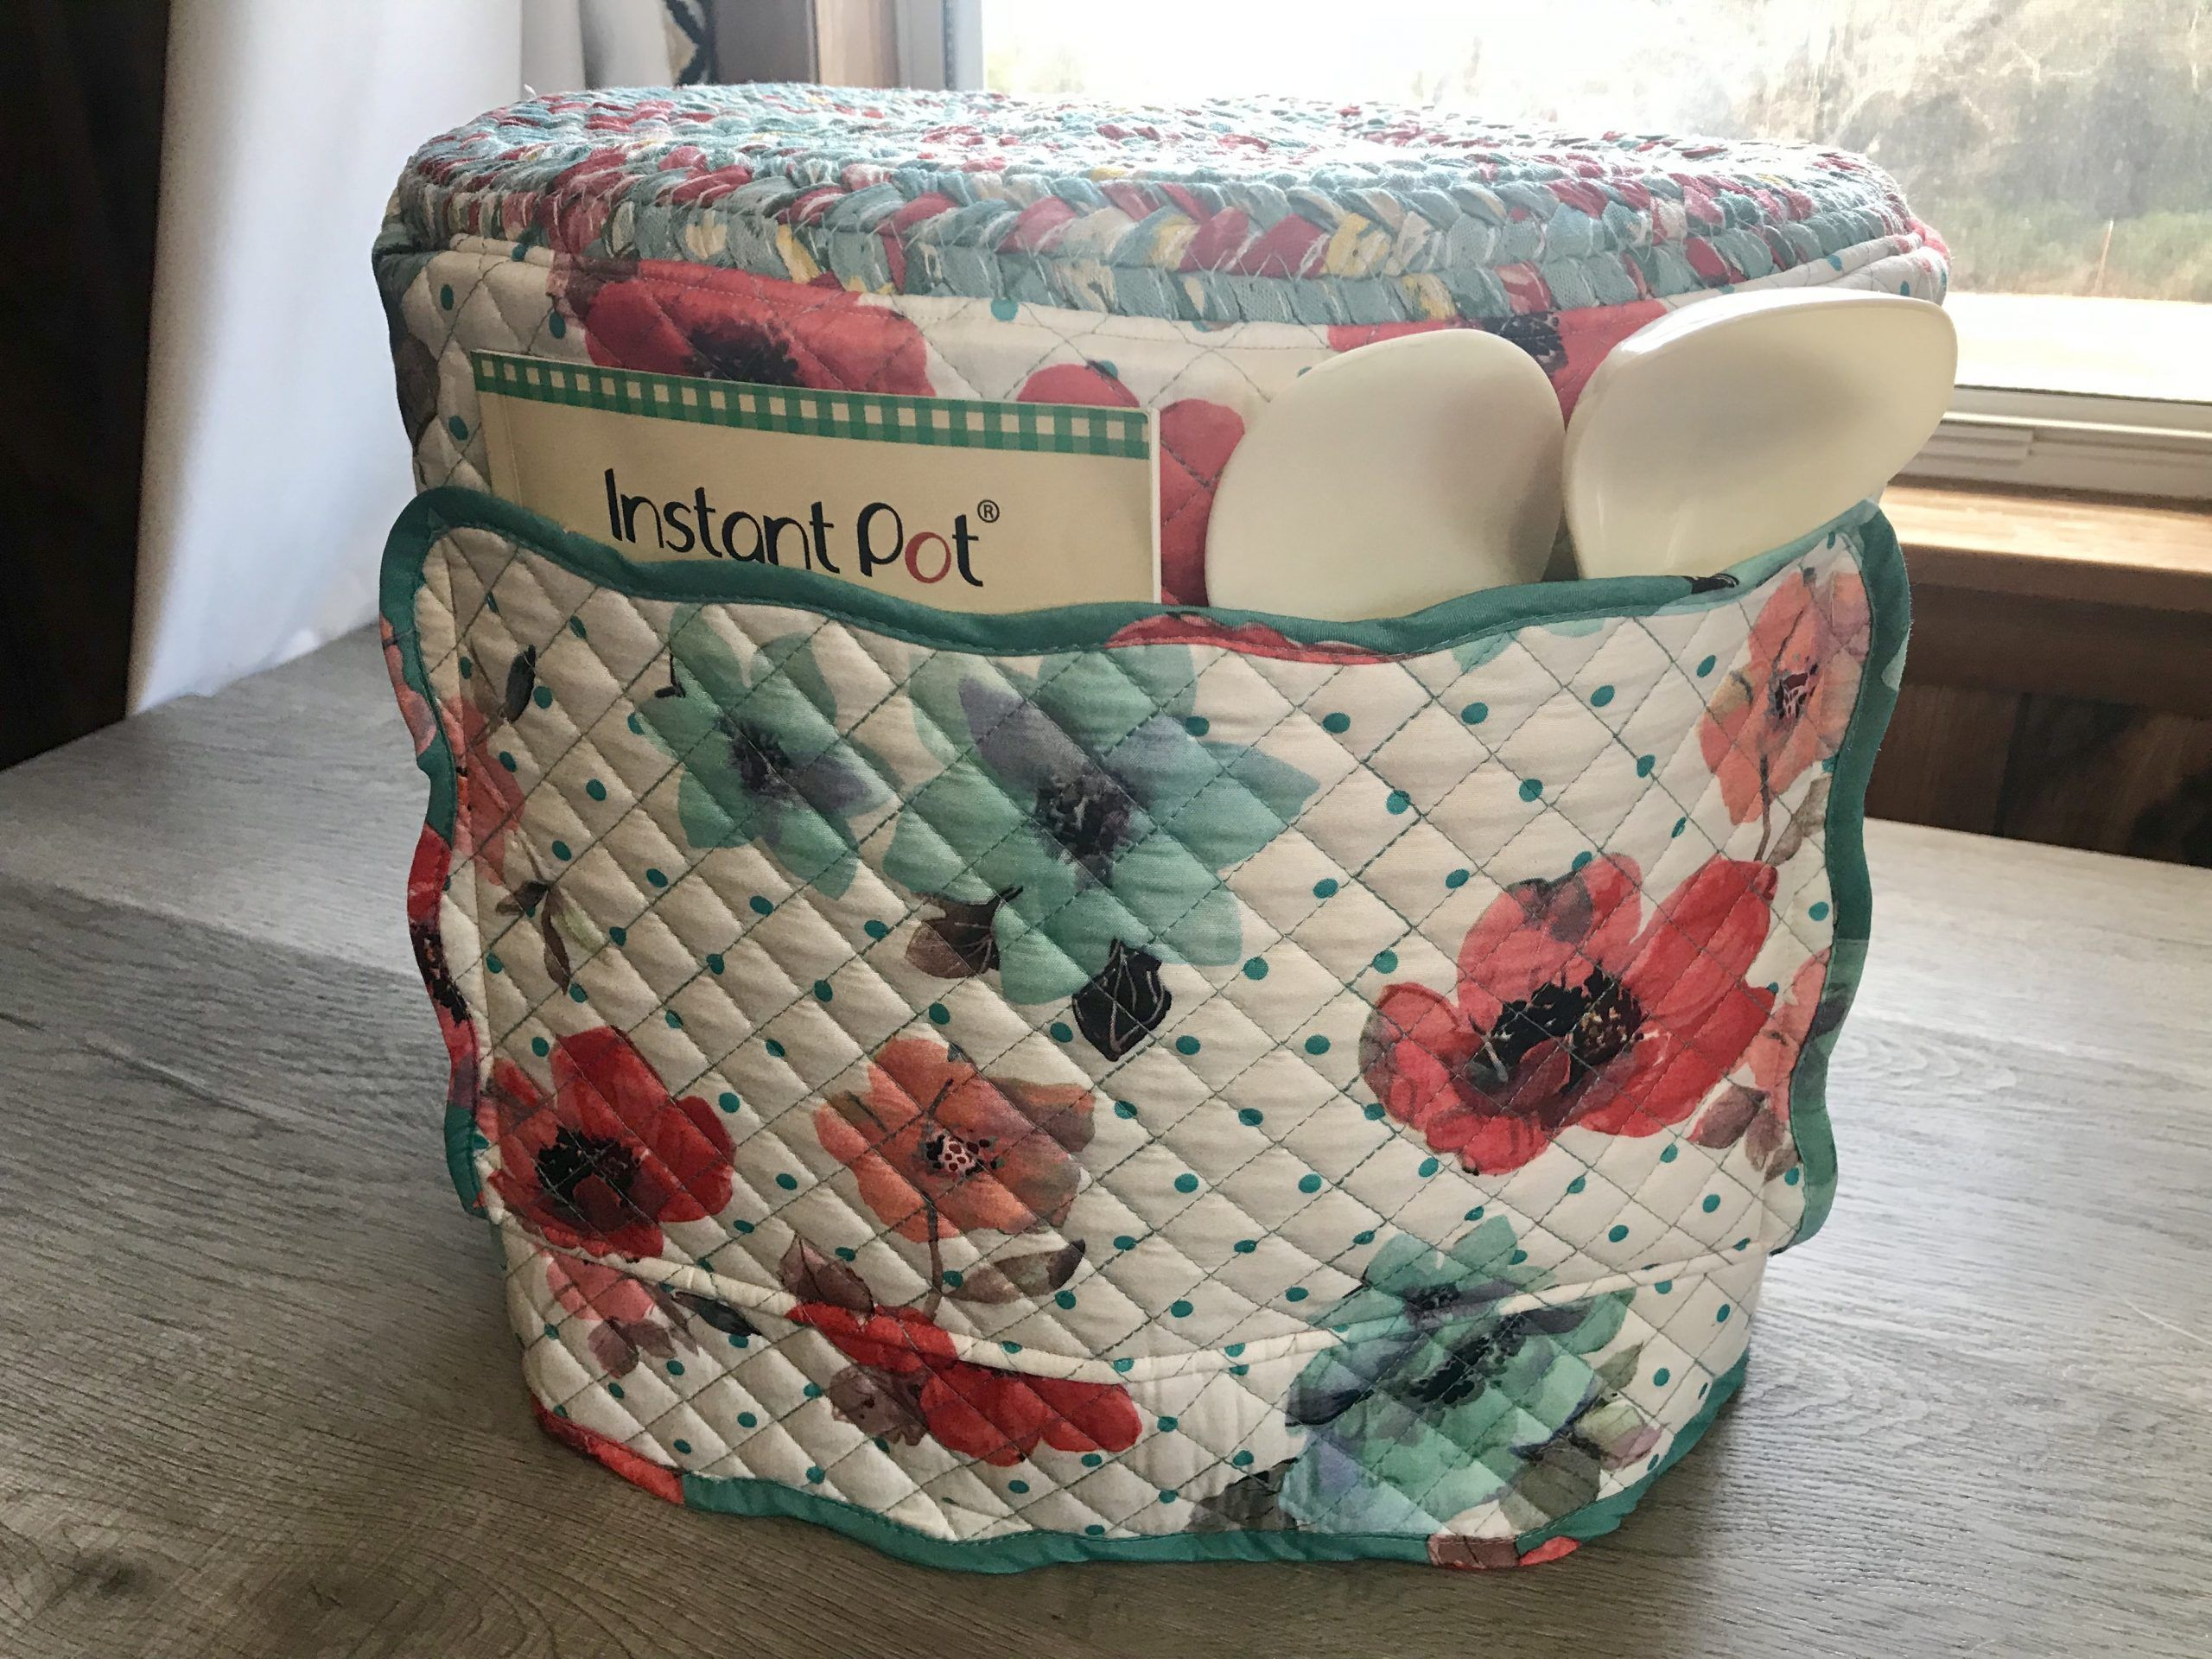 Free Pattern Instant Pot Cover From Placemats Sewing Craftgossip In 2020 Pioneer Woman Placemats Sewing Projects For Beginners Sewing Projects Free